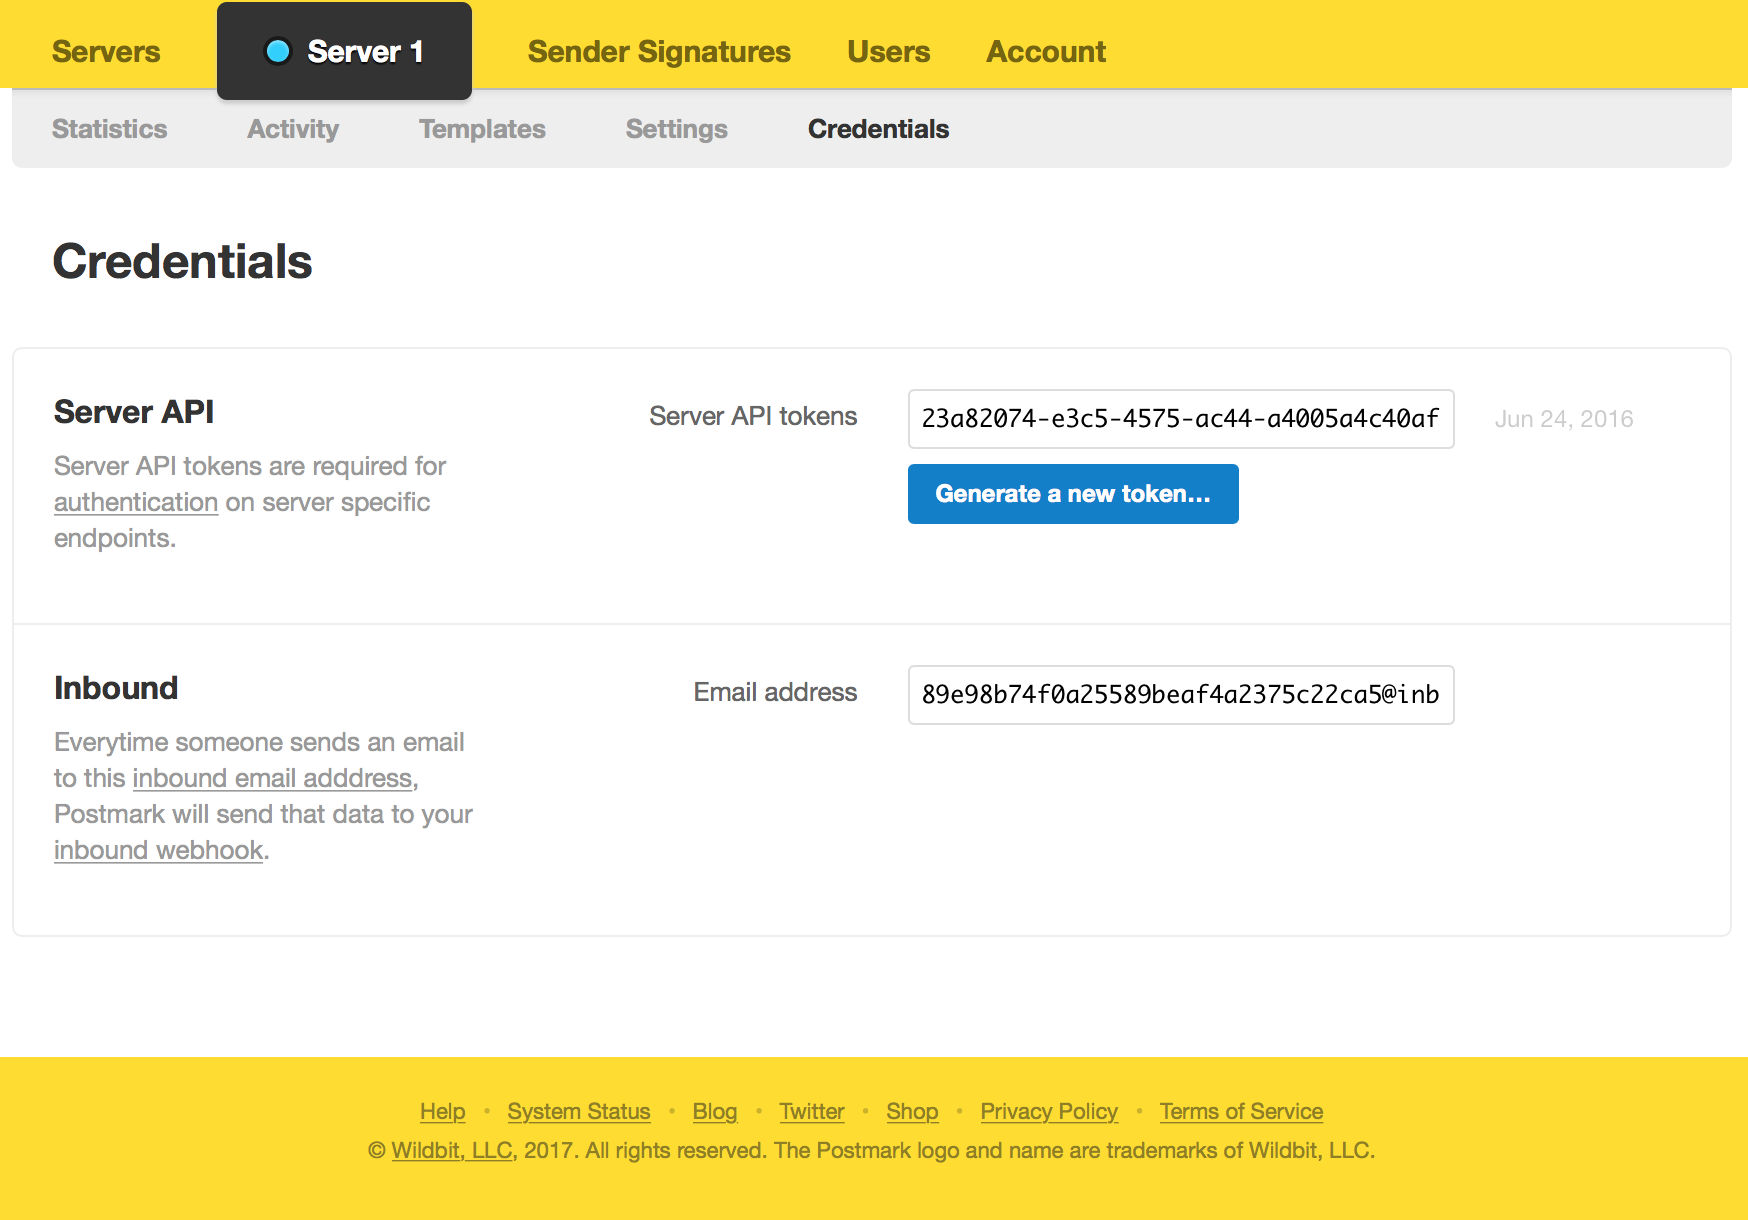 Screenshot of example server credentials for the server API as well as the automatically generated inbound email address.